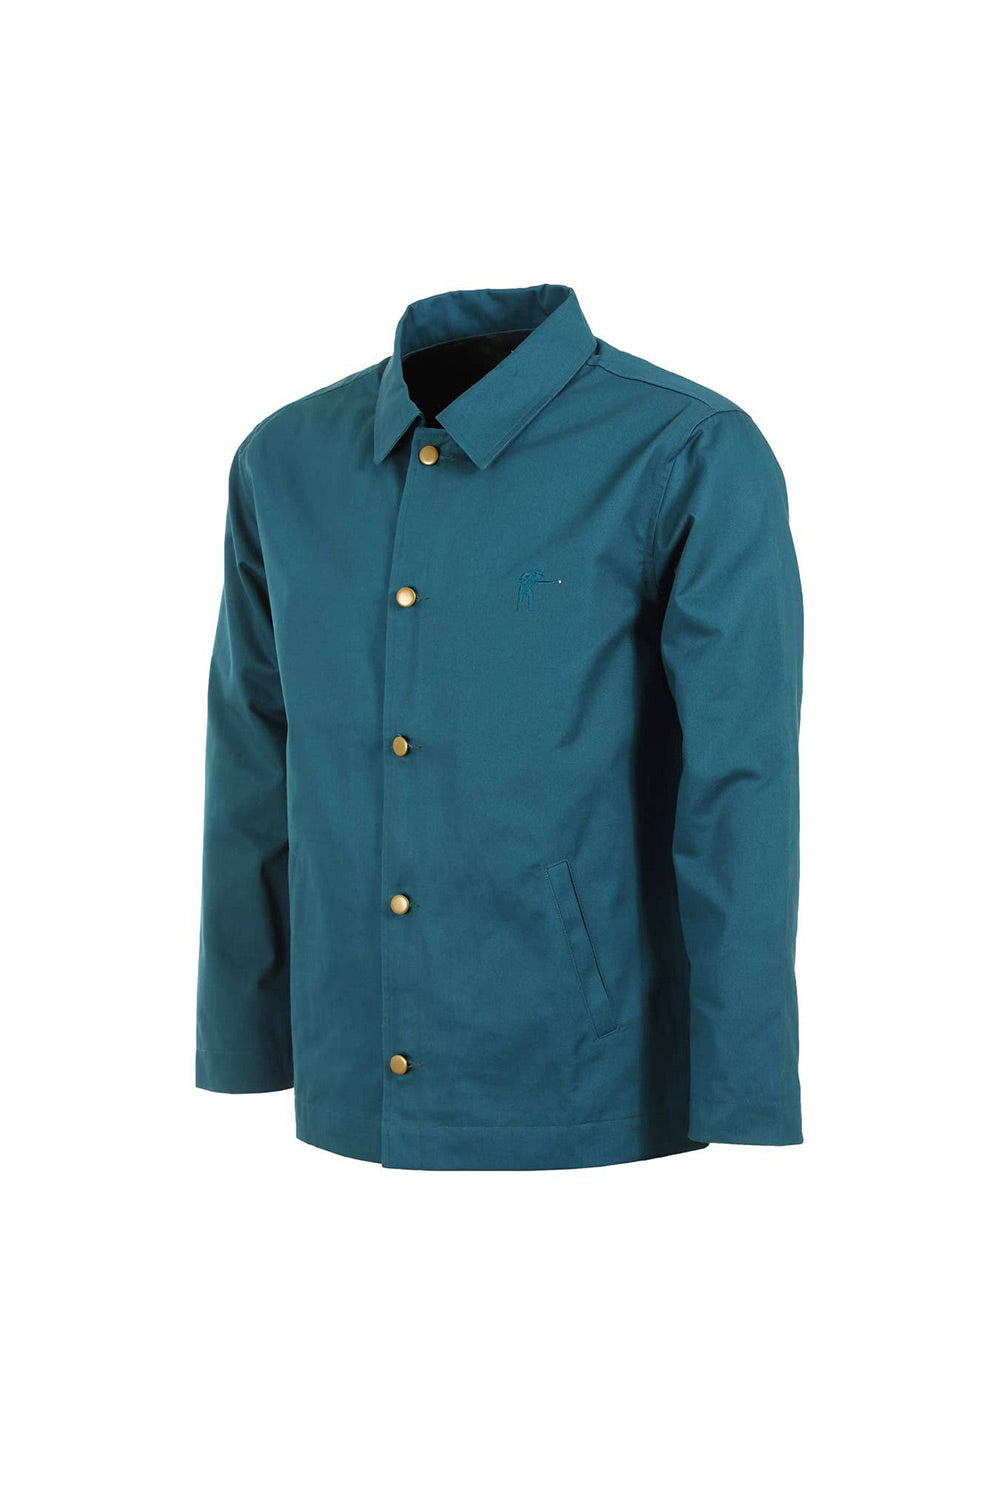 Passport Pool Workers Jacket - Forest Ocean